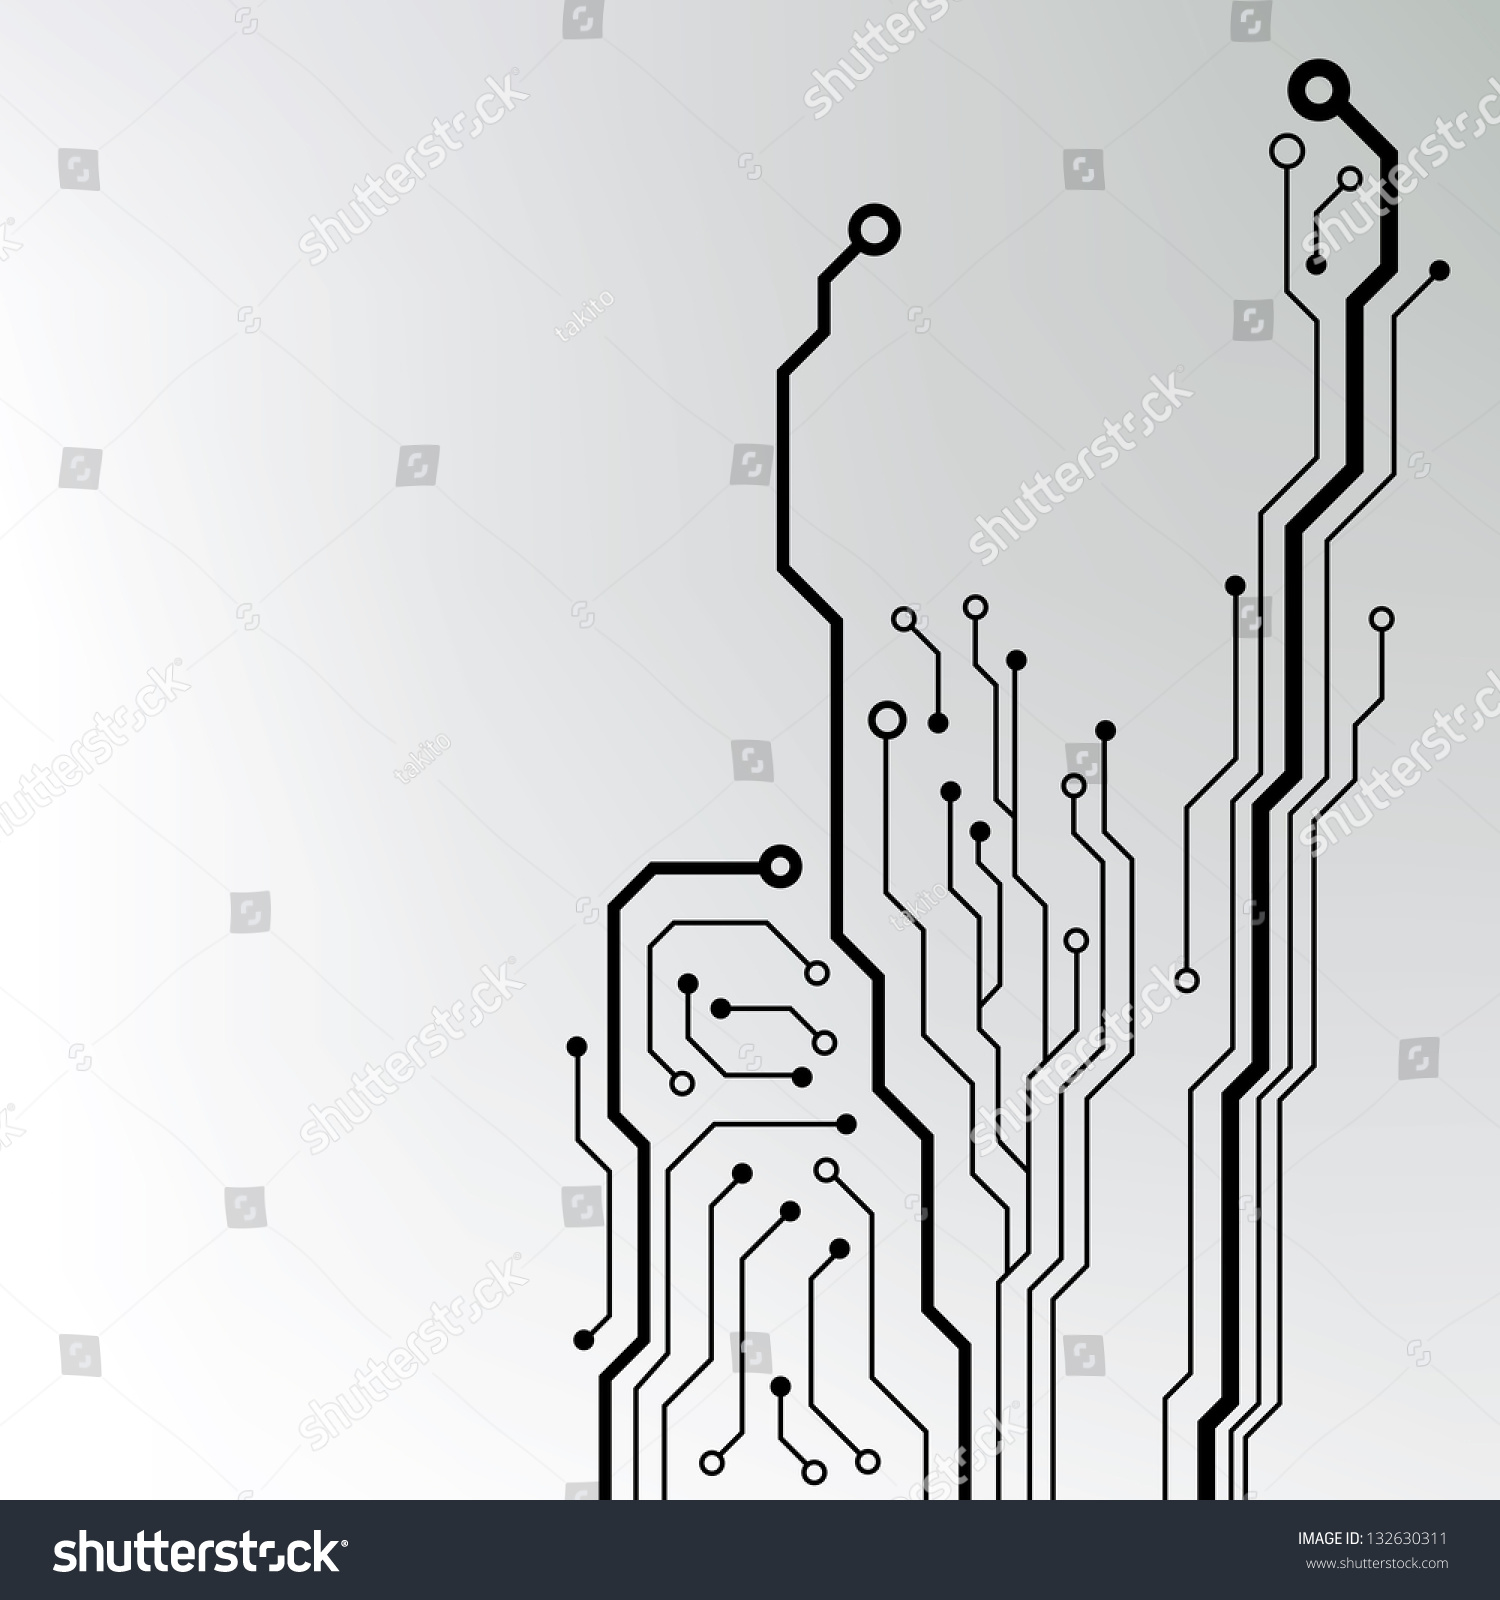 3737207 additionally 38 Best Black Wallpapers From Around The World moreover Marko Clerk together with 1000154809 together with Ub905s. on robotic hardware card